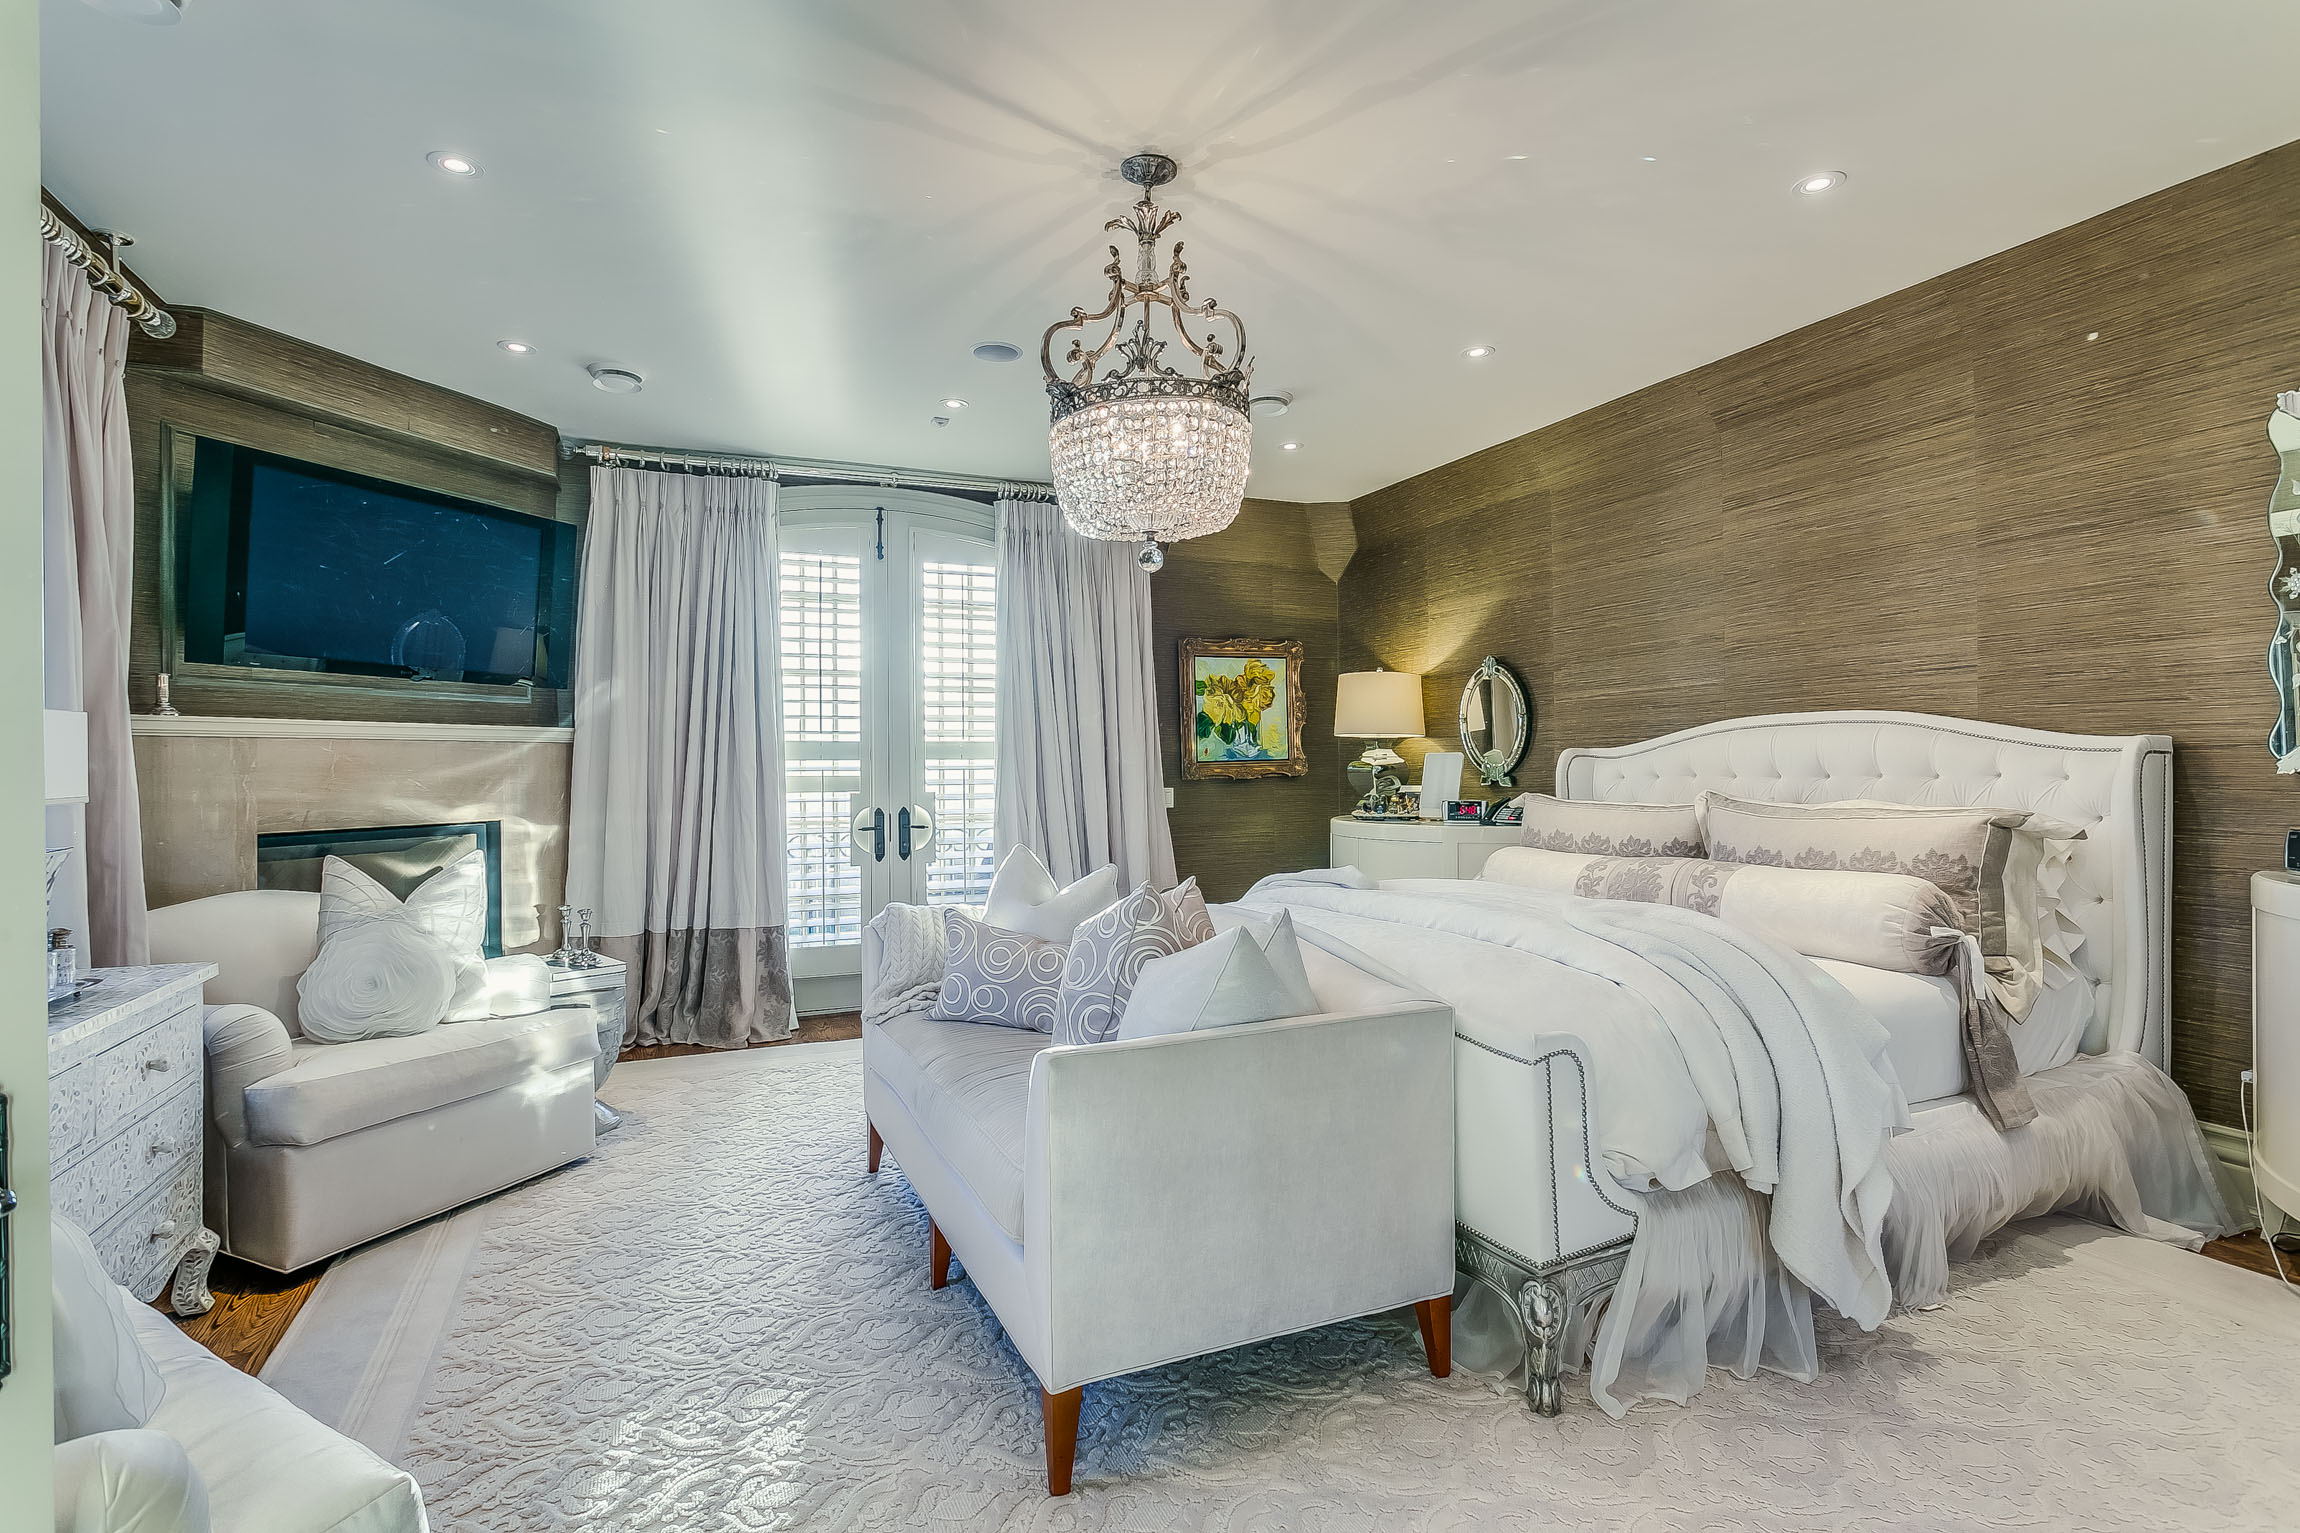 the bedroom - Five Generous Sized, Private Bedrooms, Are The Perfect Retreat From The Magnificent Main Floor. Step Into the Master Suite Through Double Doors and an Ante Room, and Be Prepared To Feel Like Royalty.